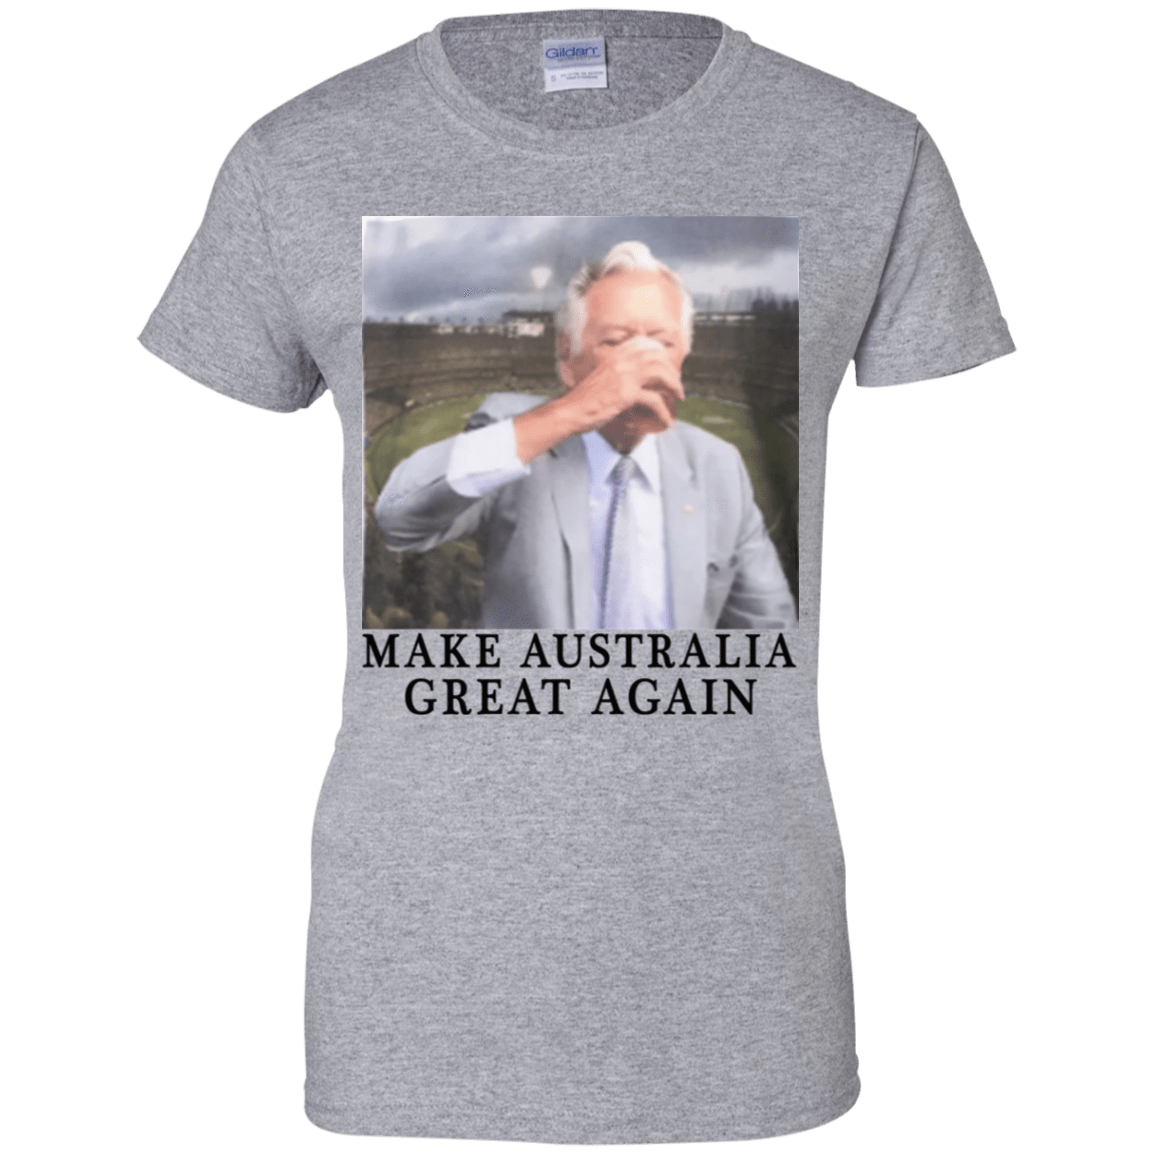 Make Australia Great Again 939-9265-72984815-44821 - Tee Ript